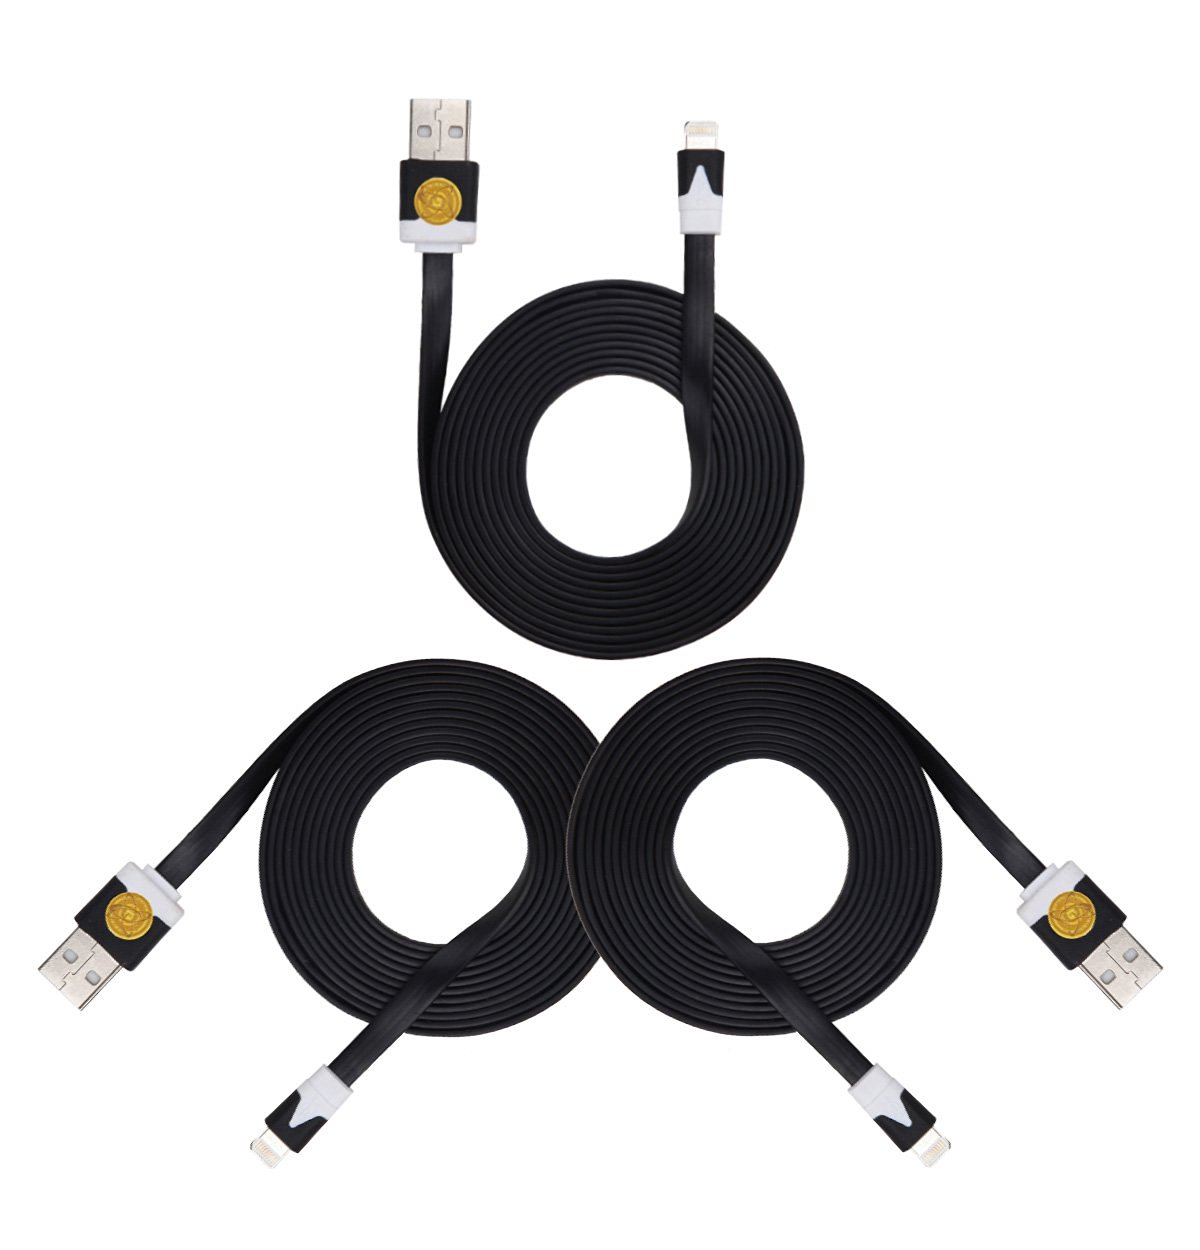 2M Heavy Duty Flat Noodle Lightning USB Cable for Apple iPhone 6,6S -Blk Blk Blk